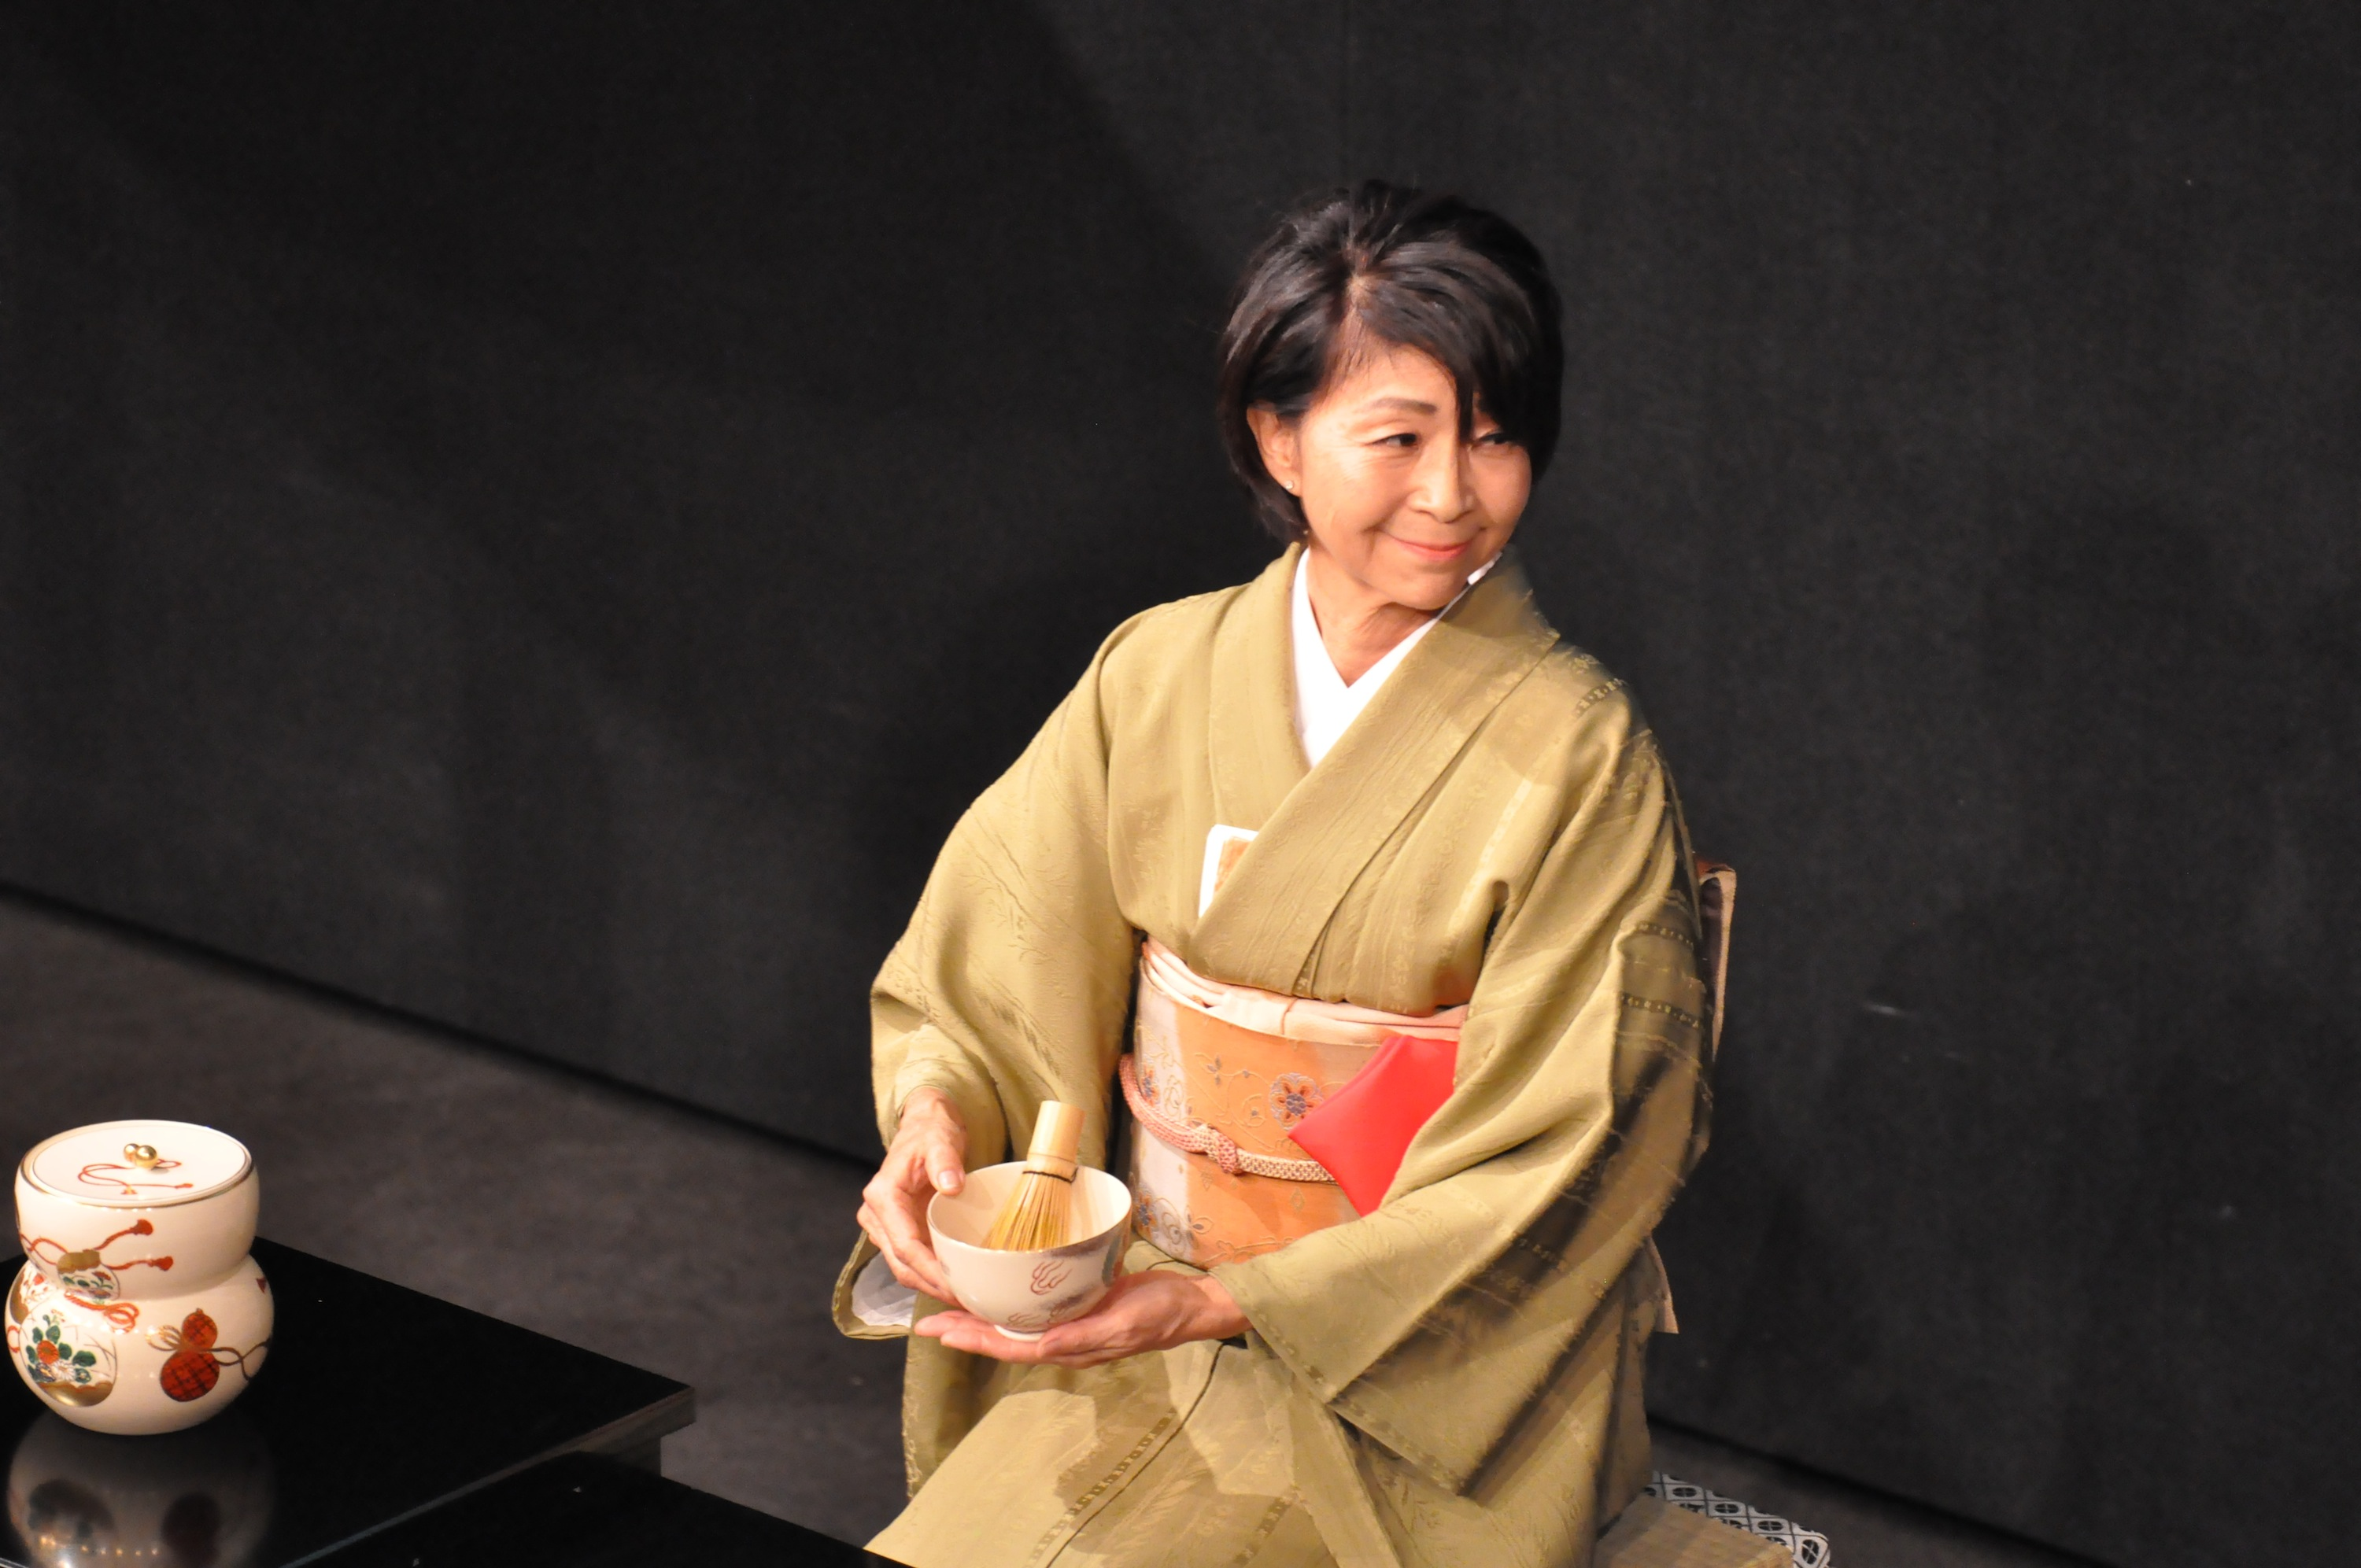 japanese tea ceremony On september 8, 2018 we will celebrate japan house's 20th anniversary, and the next day, september 9, 2018, will be our best matsuri (japanese festival) yet our tea ceremonies will run through june, and we will then close for the summer.